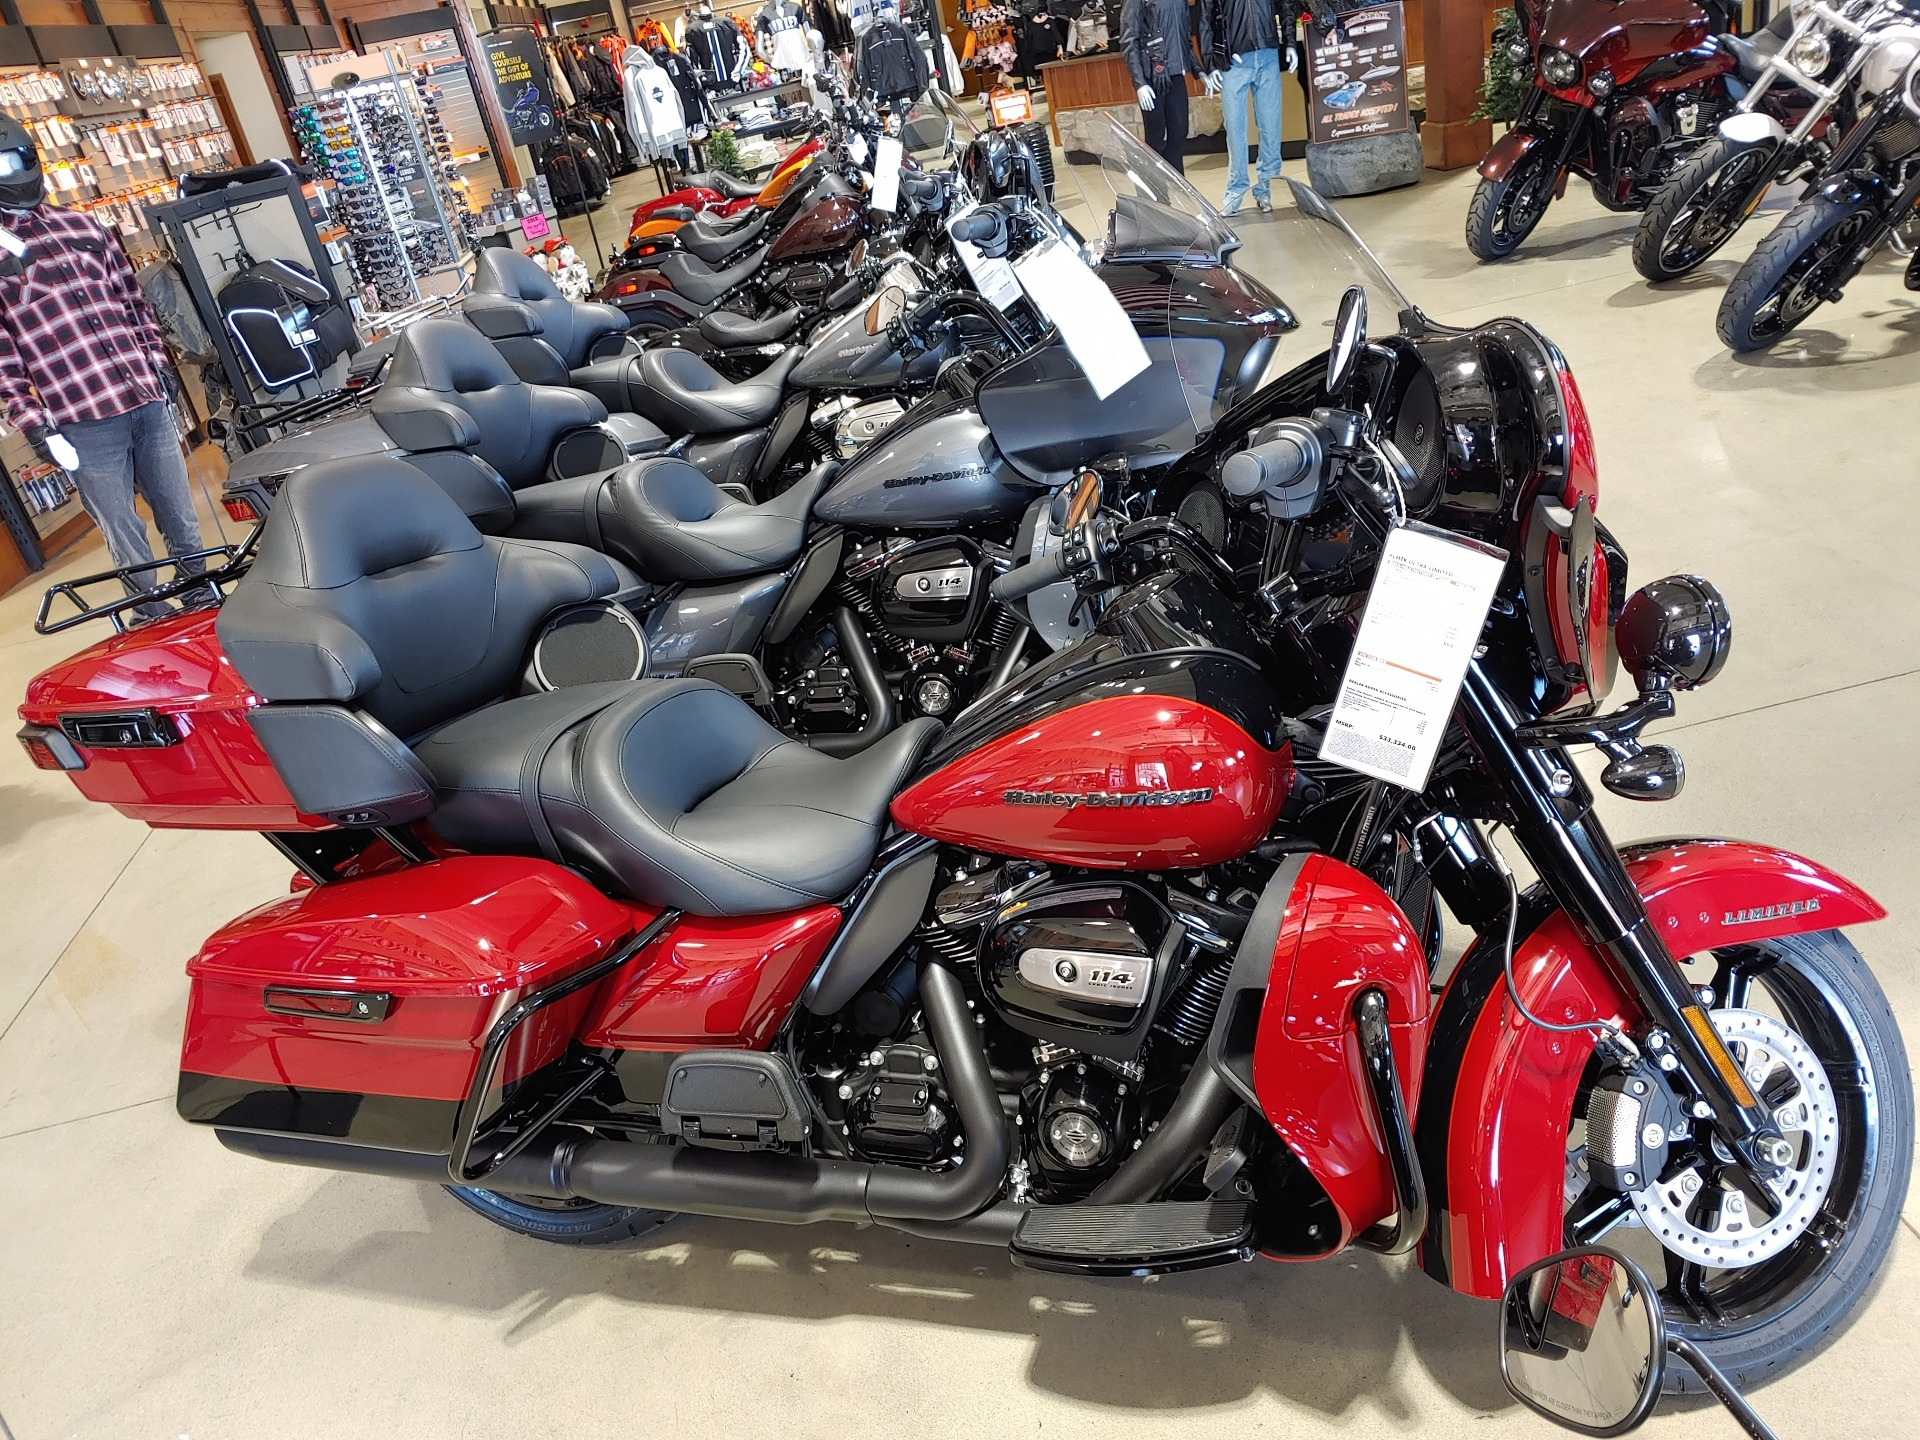 2021 Harley-Davidson Ultra Limited in Broadalbin, New York - Photo 3